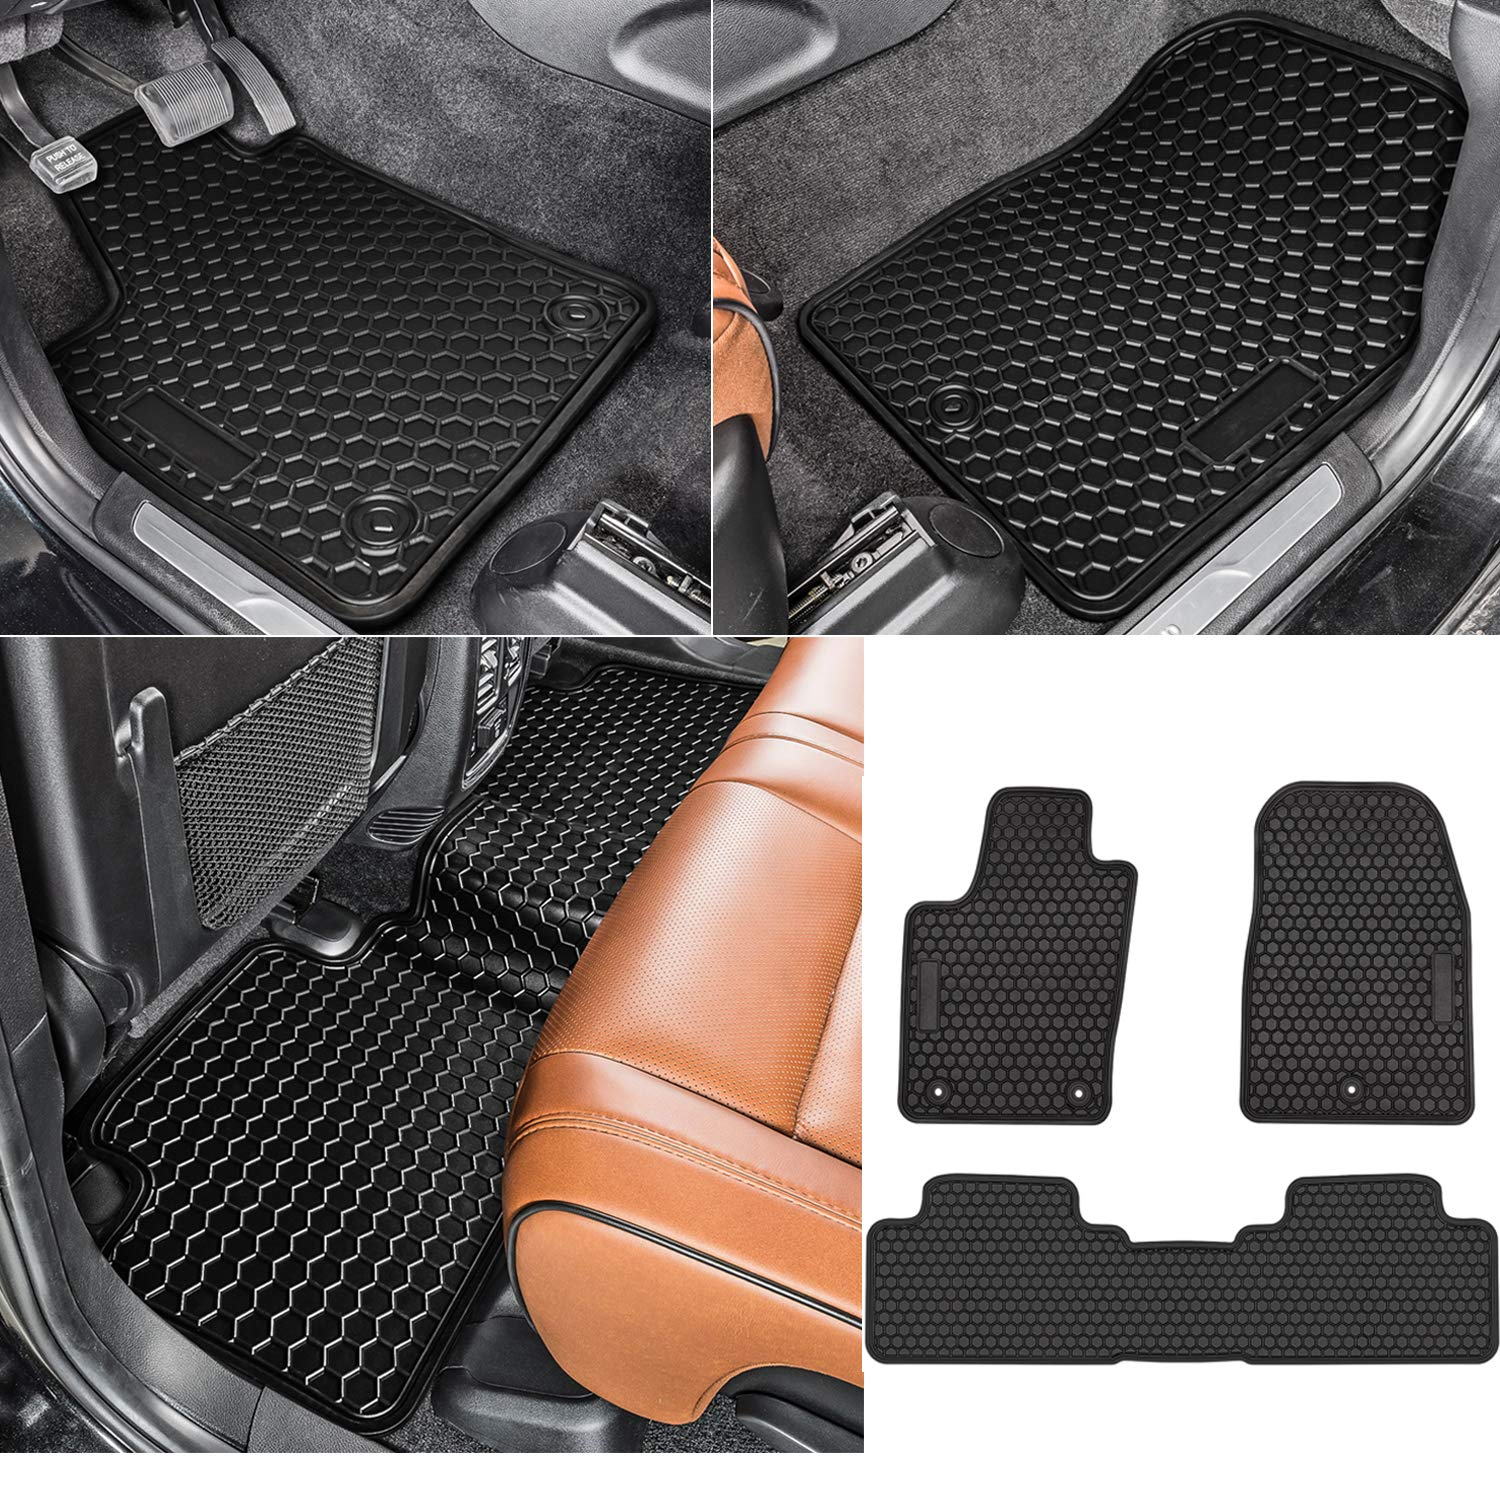 Custom Fit All-Weather Guard Odorless Heavy Duty Rubber bonbo Floor Liner Mats for Jeep Grand Cherokee 2011-2016 Pack of 3 Front and Rear Seat Floor Mats